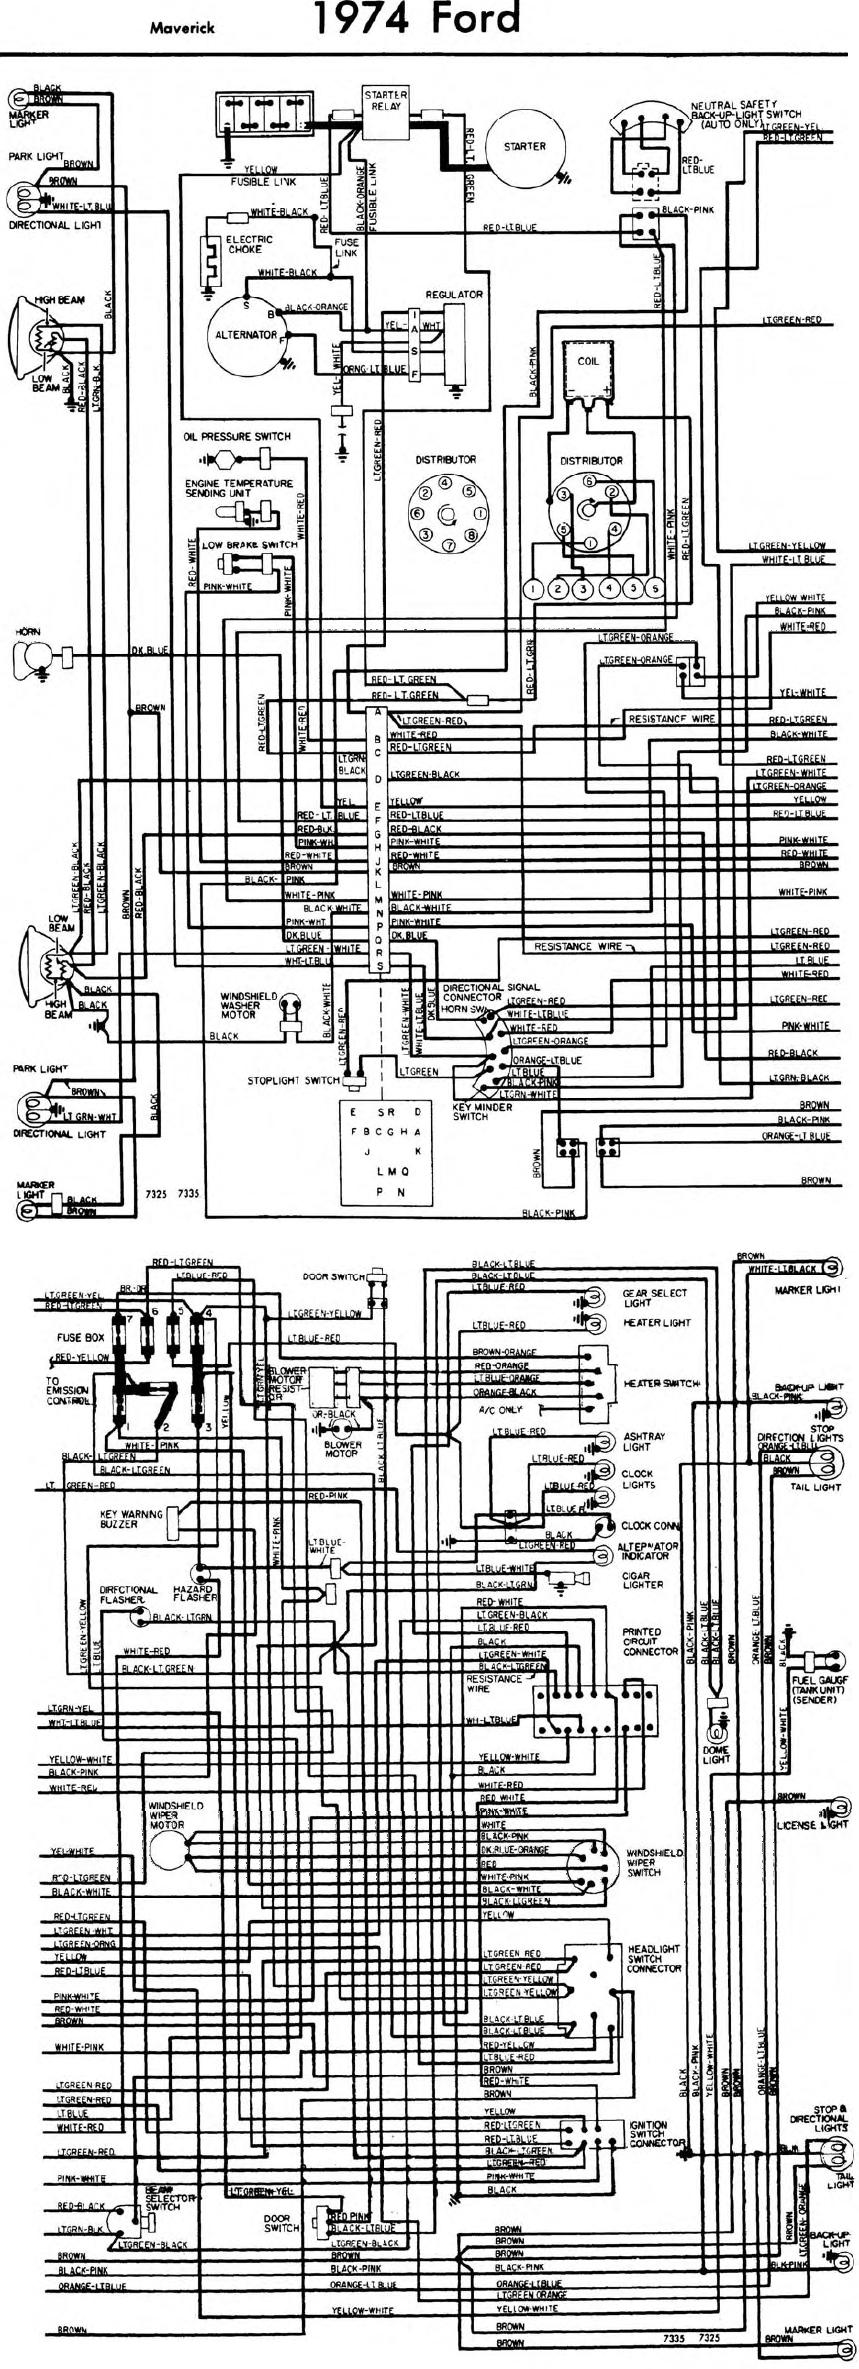 small resolution of ford maverick wiring wiring diagram inside1973 maverick wiring diagram 5